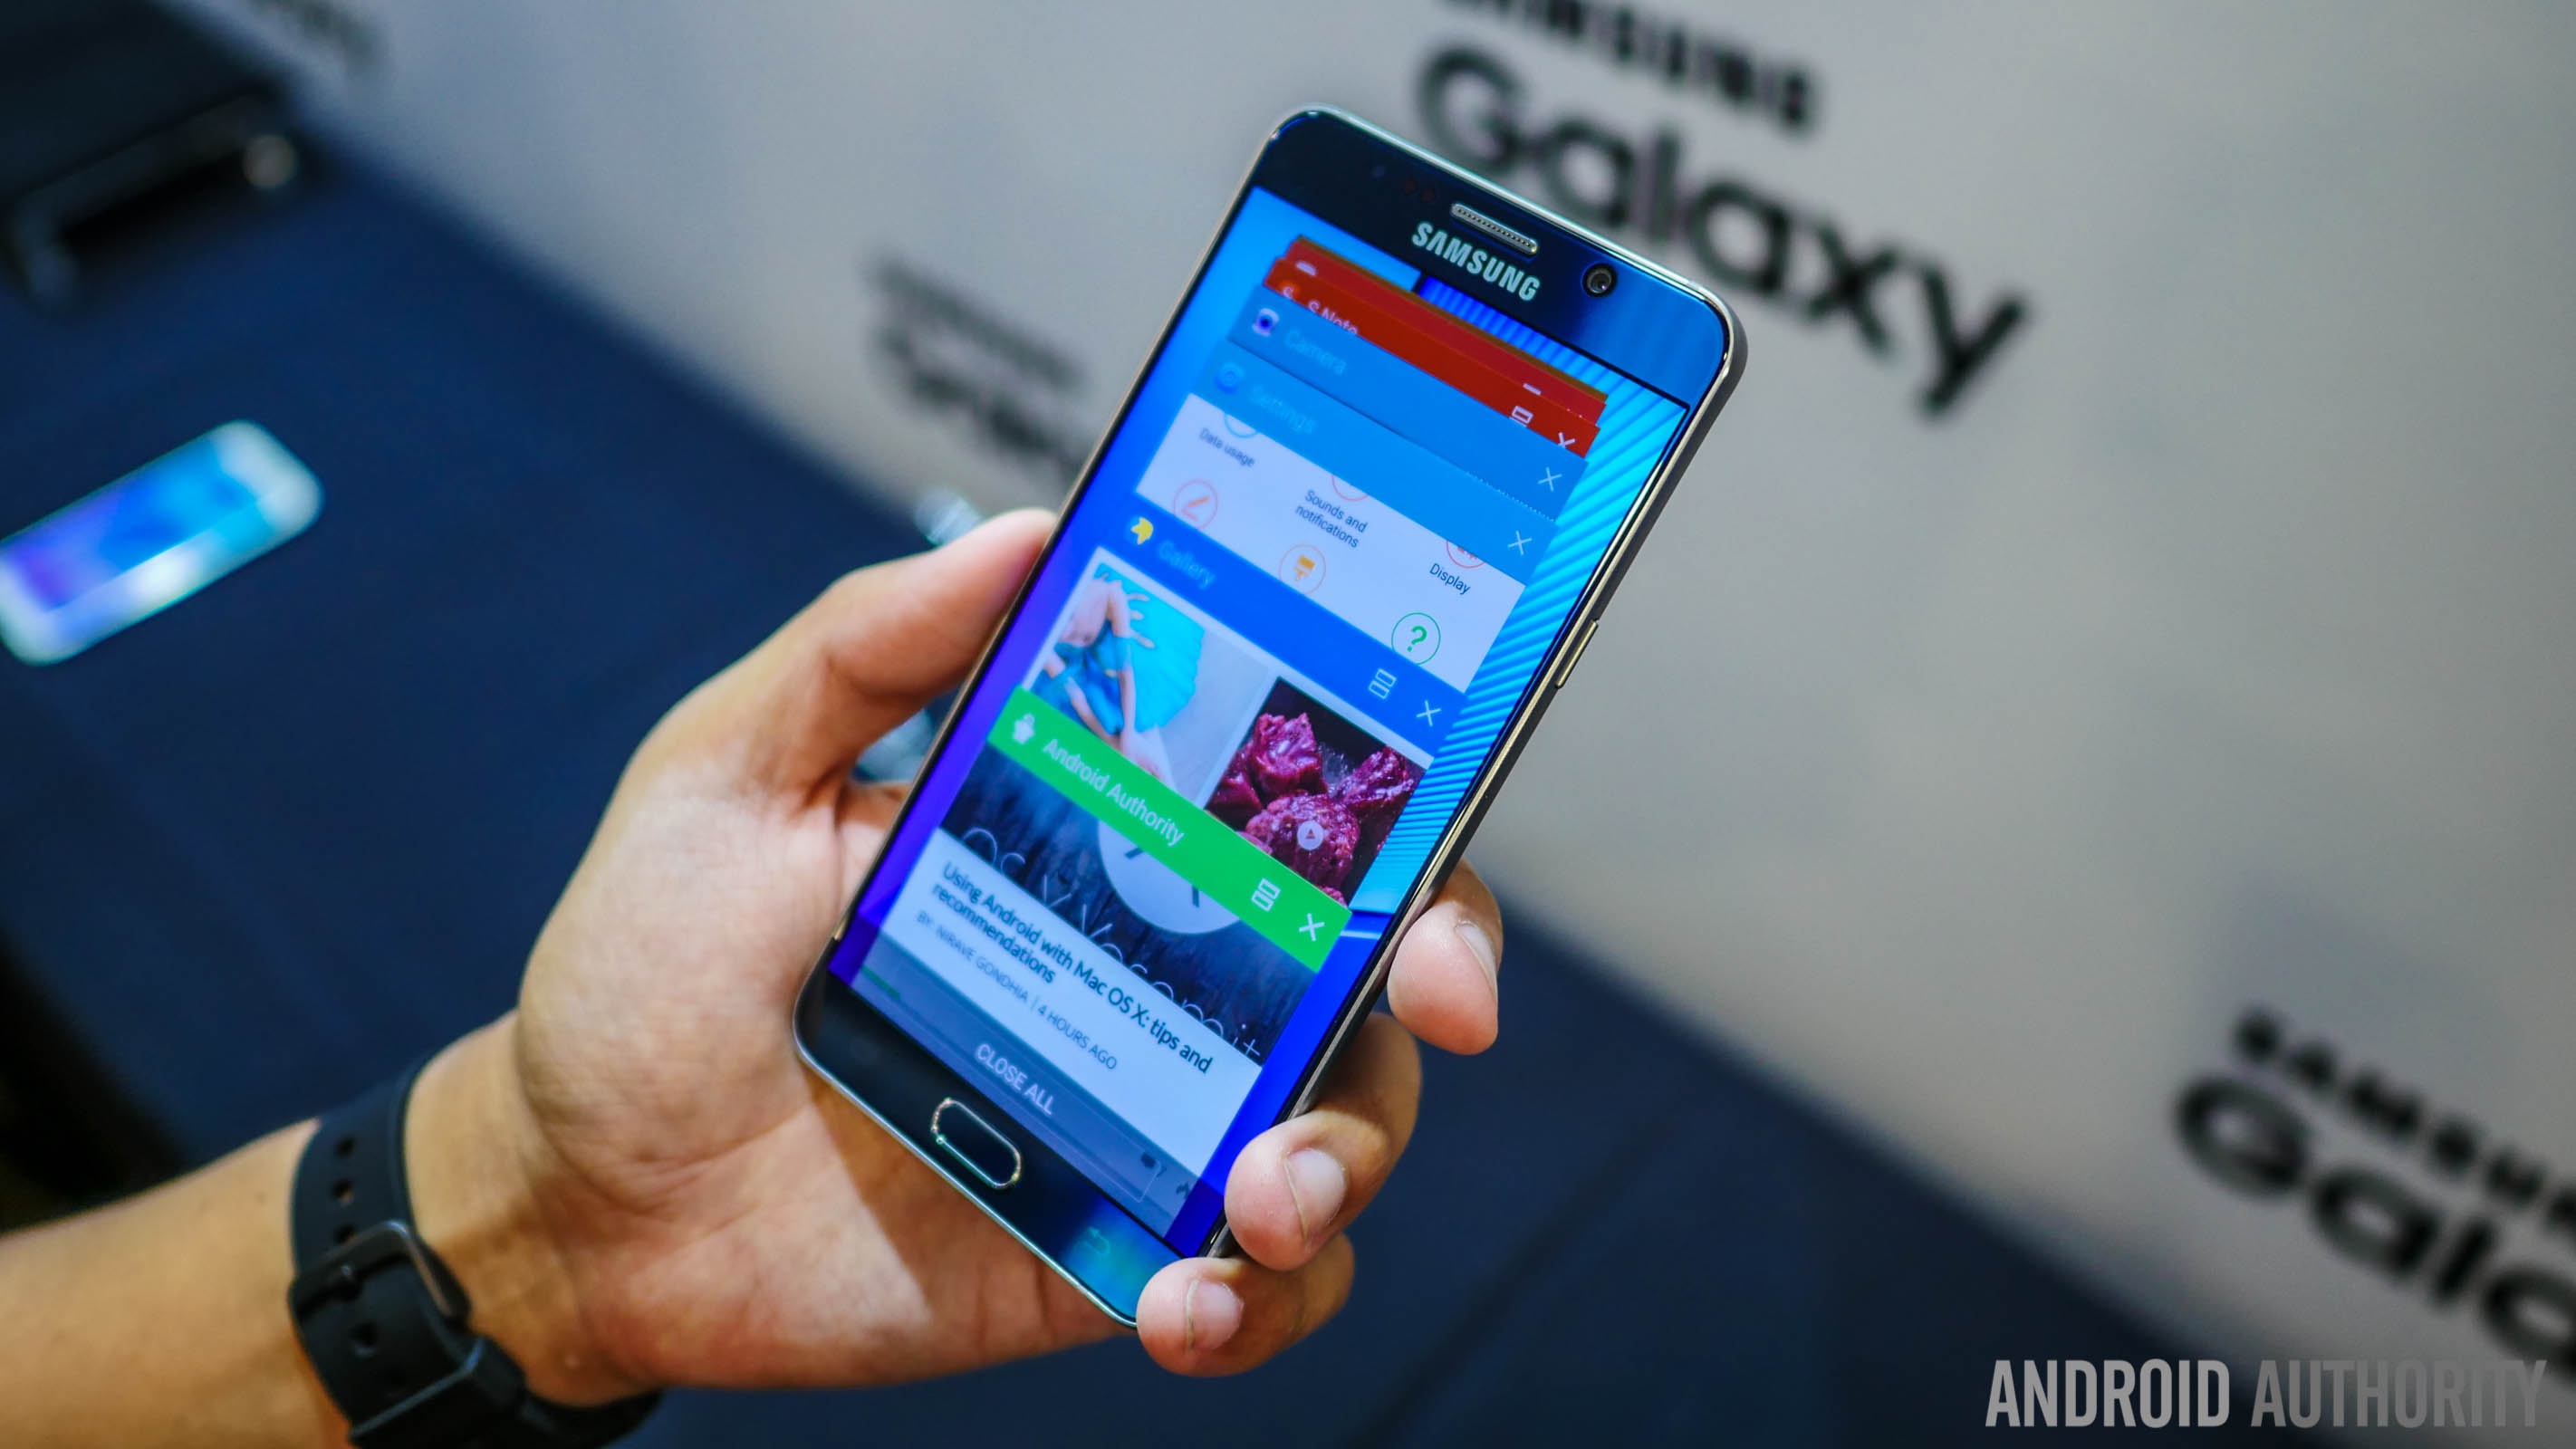 samsung galaxy note 5 first look aa (37 of 41)